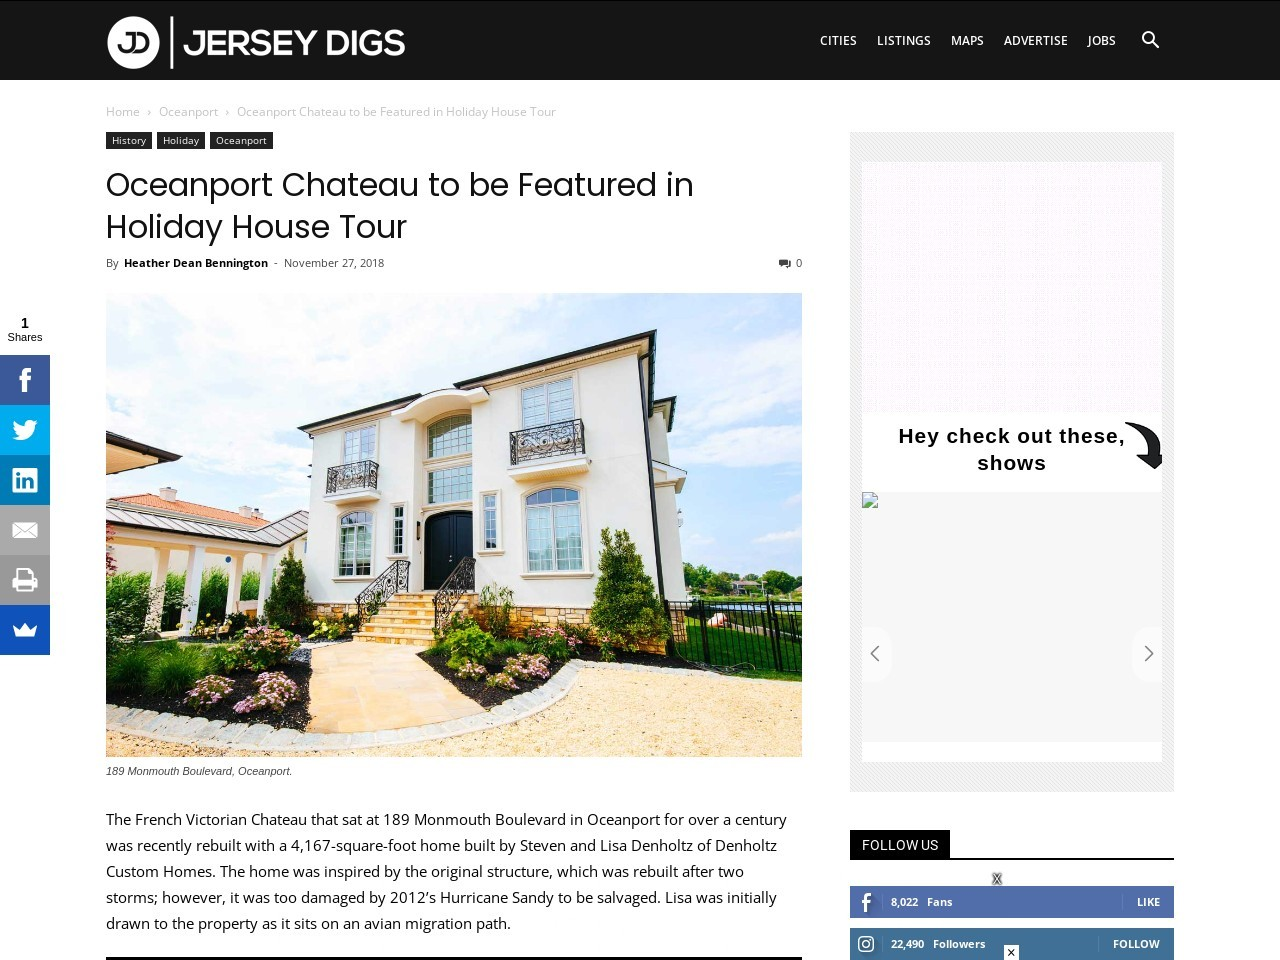 Oceanport Chateau to be Featured in Holiday House Tour